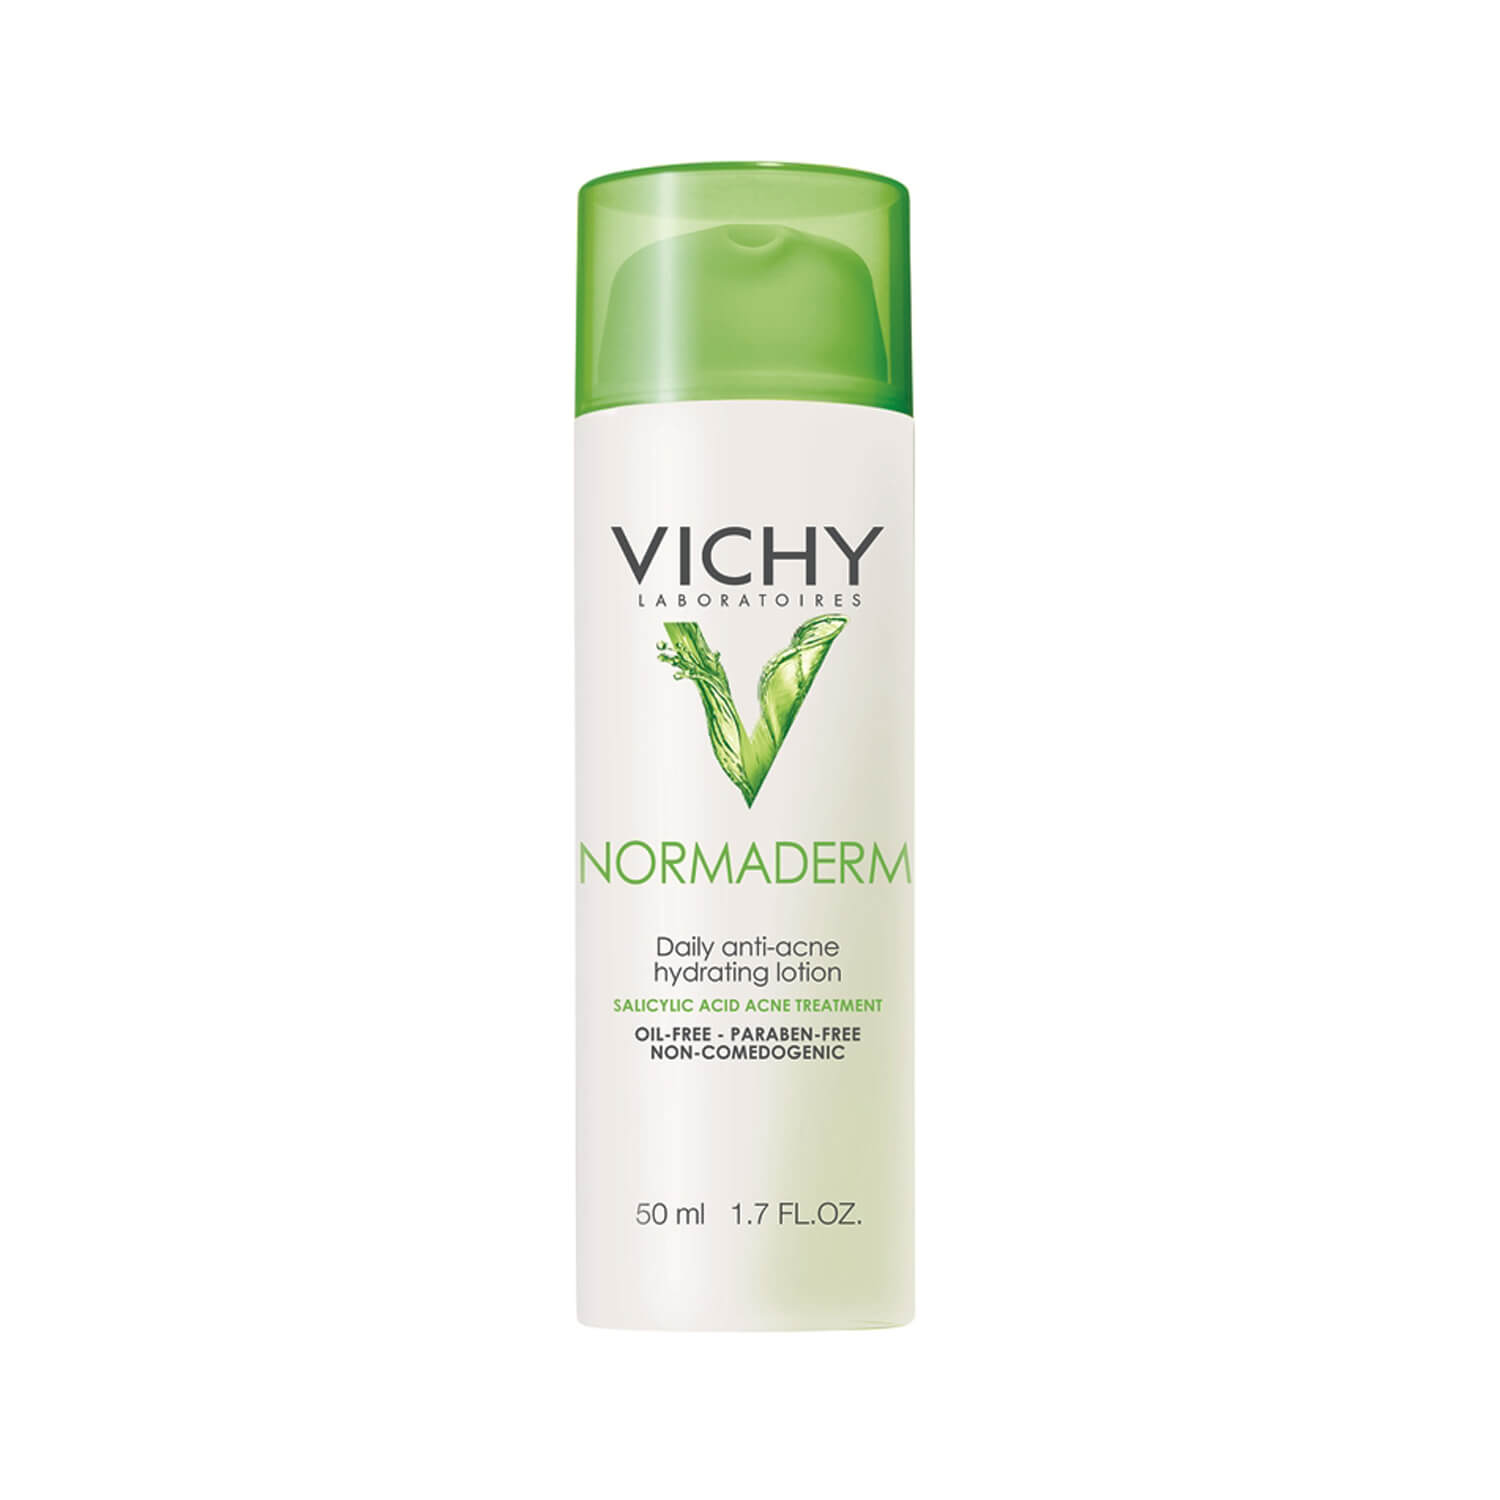 Vichy Normaderm Daily Anti-Acne Hydrating Lotion